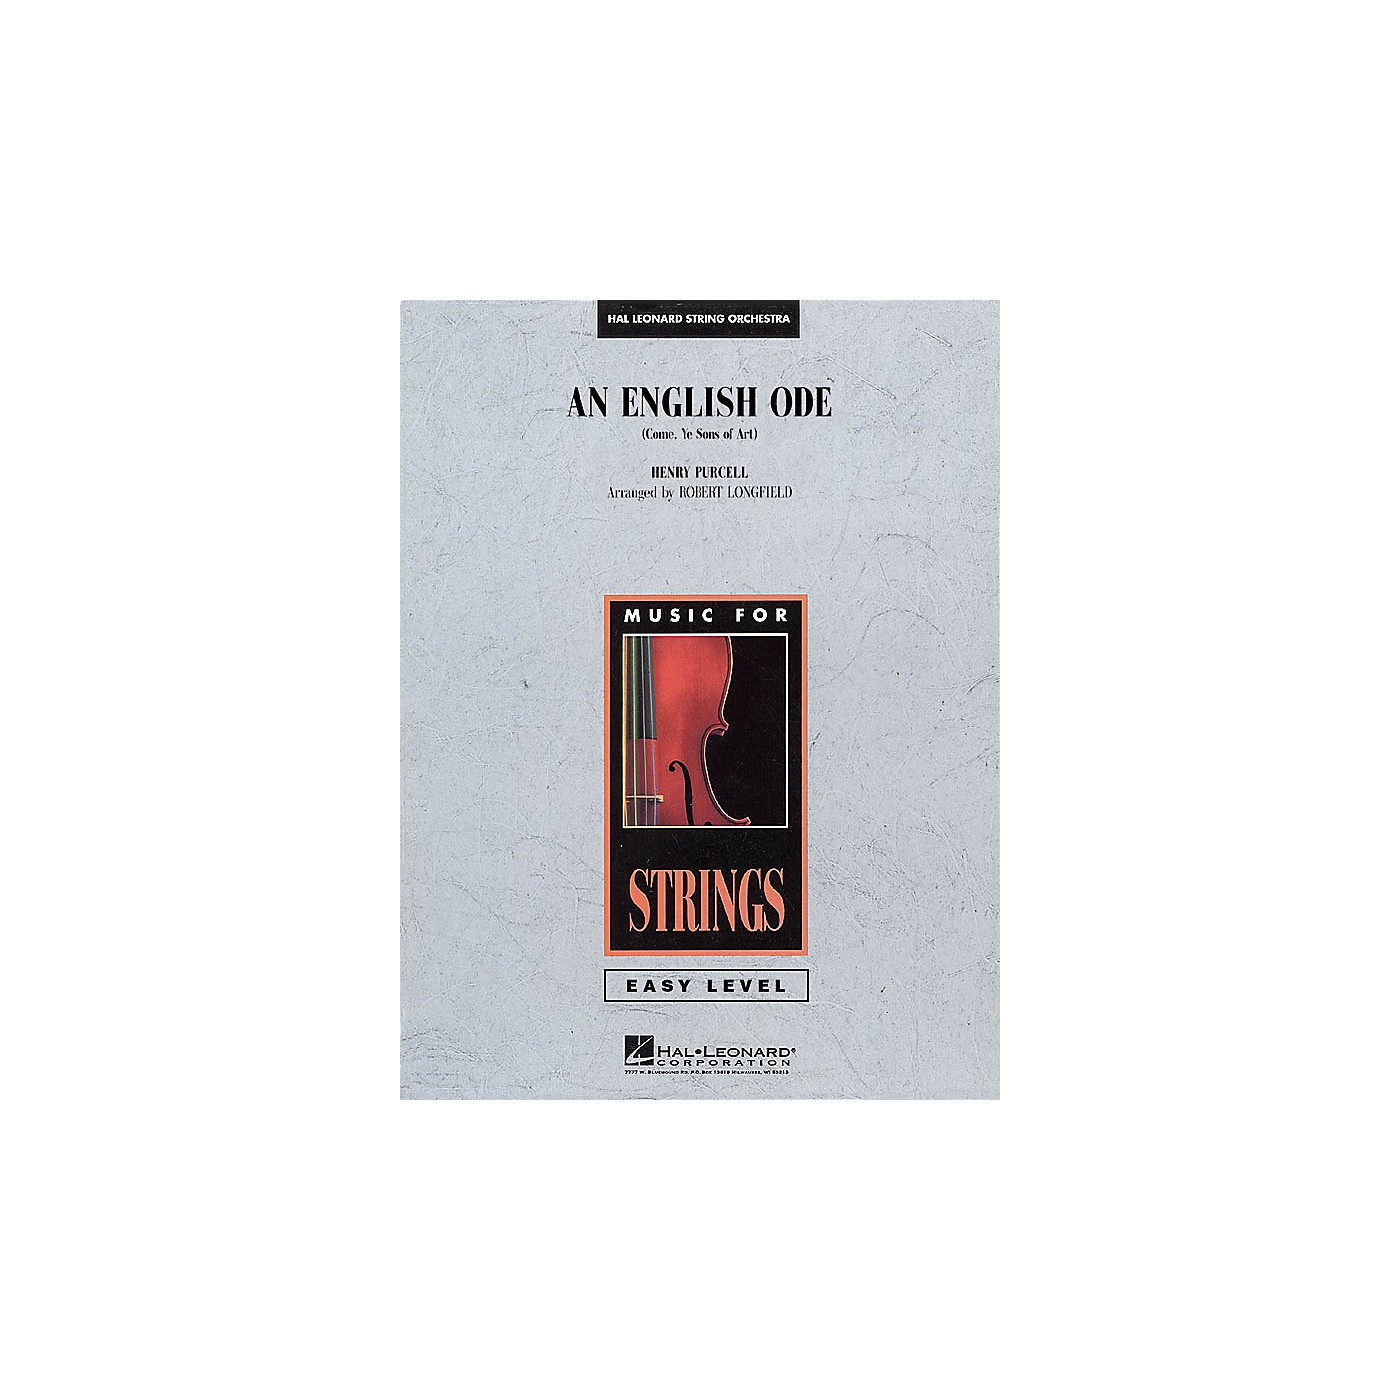 Hal Leonard An English Ode (Come, Ye Sons of Art) Easy Music For Strings Series Softcover by Robert Longfield thumbnail